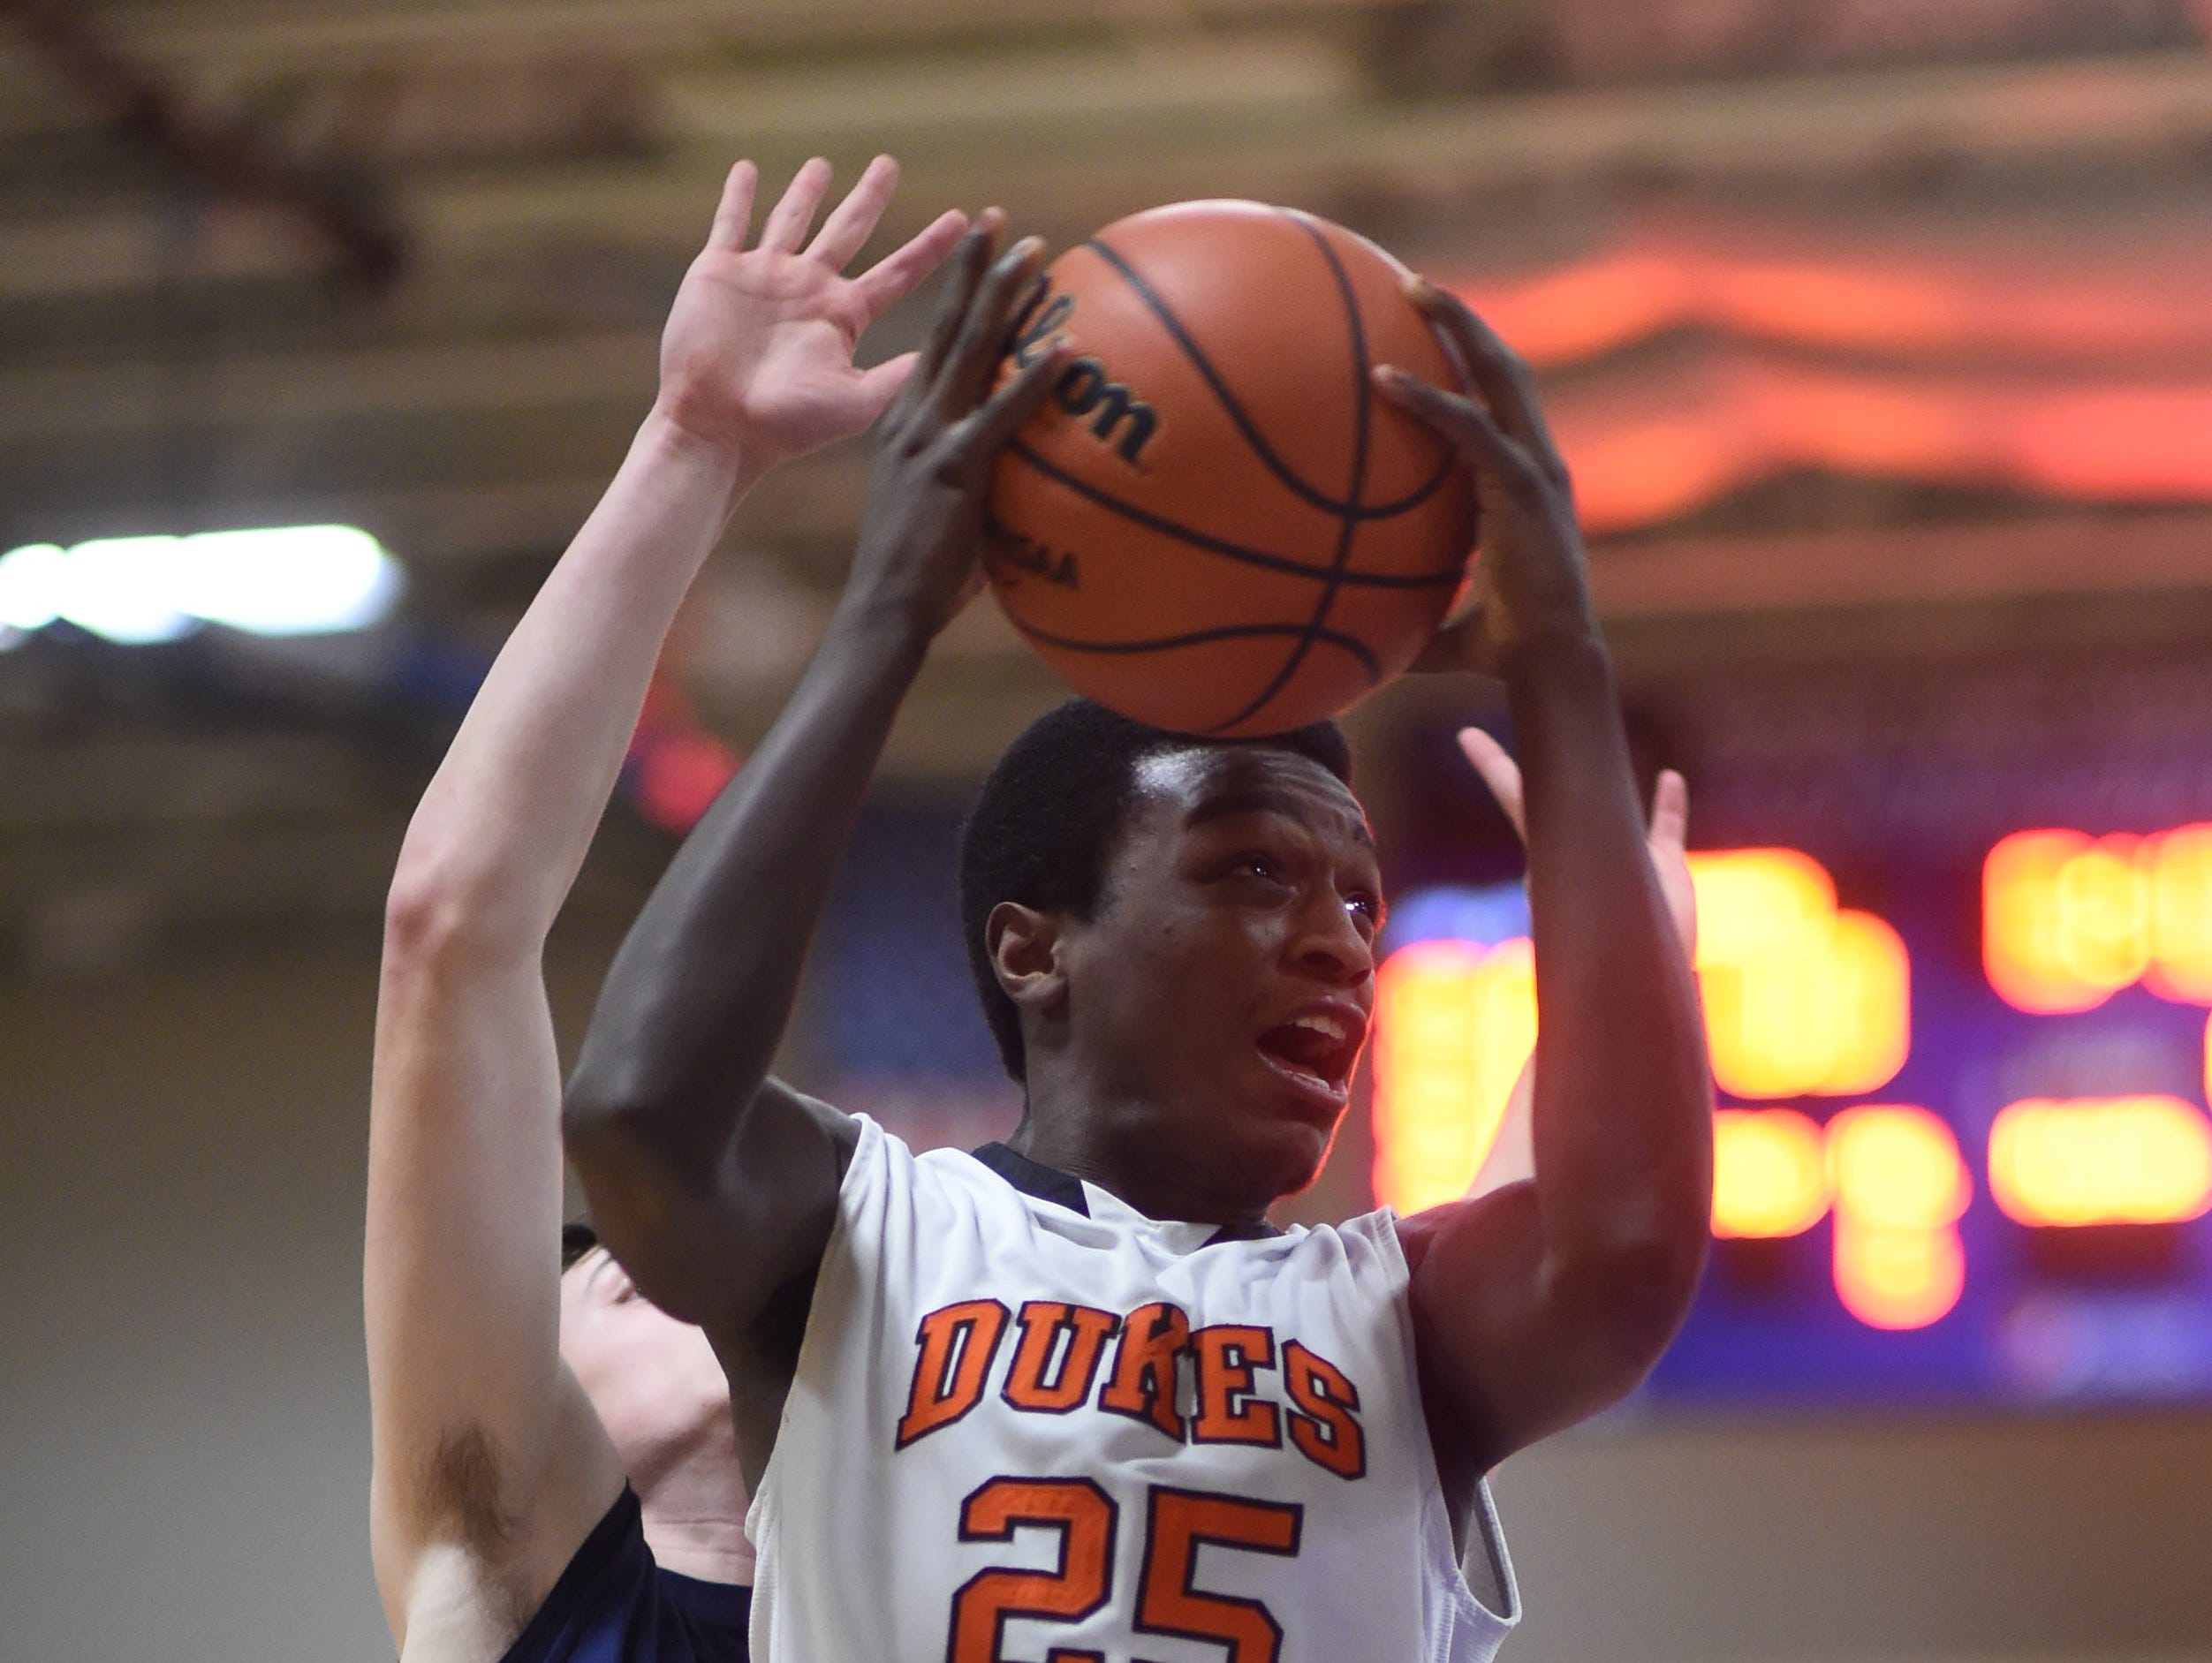 Marlboro's Joseph Nugent goes for a layup during Wednesday's class B regional semi-final versus Briarcliff at Mount Saint Mary College in Newburgh.